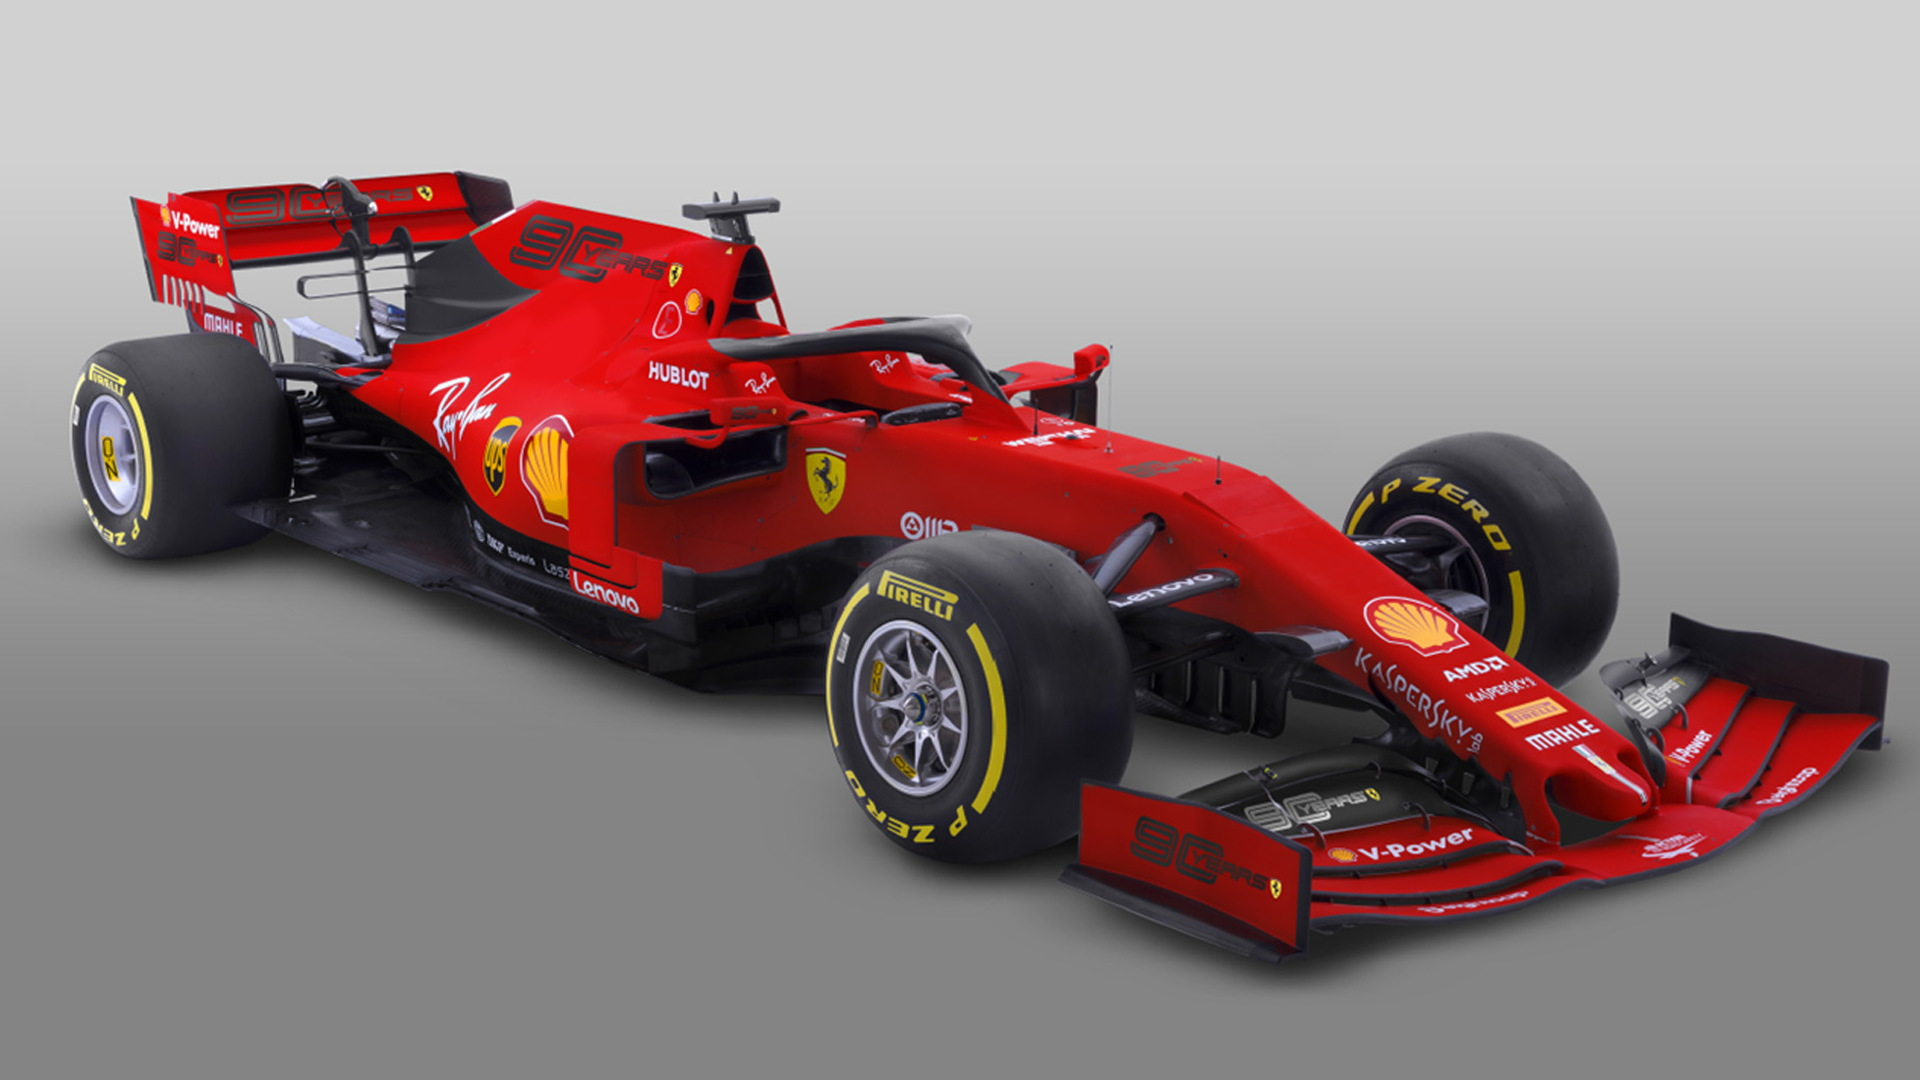 Ferrari's F1 car to don 90th anniversary livery for 2019